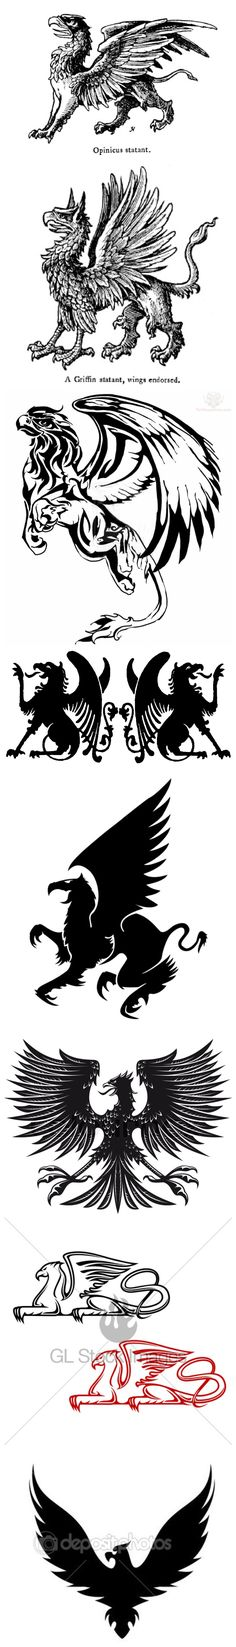 Homebrewing logo Griffin design reference line drawing tattoo Line Drawing Tattoos, Tattoo Drawings, Art Drawings, Tattoo Art, Makeup Illustration, Engraving Illustration, Gryphon Tattoo, Tattoo Vieja Escuela, Griffin Tattoo